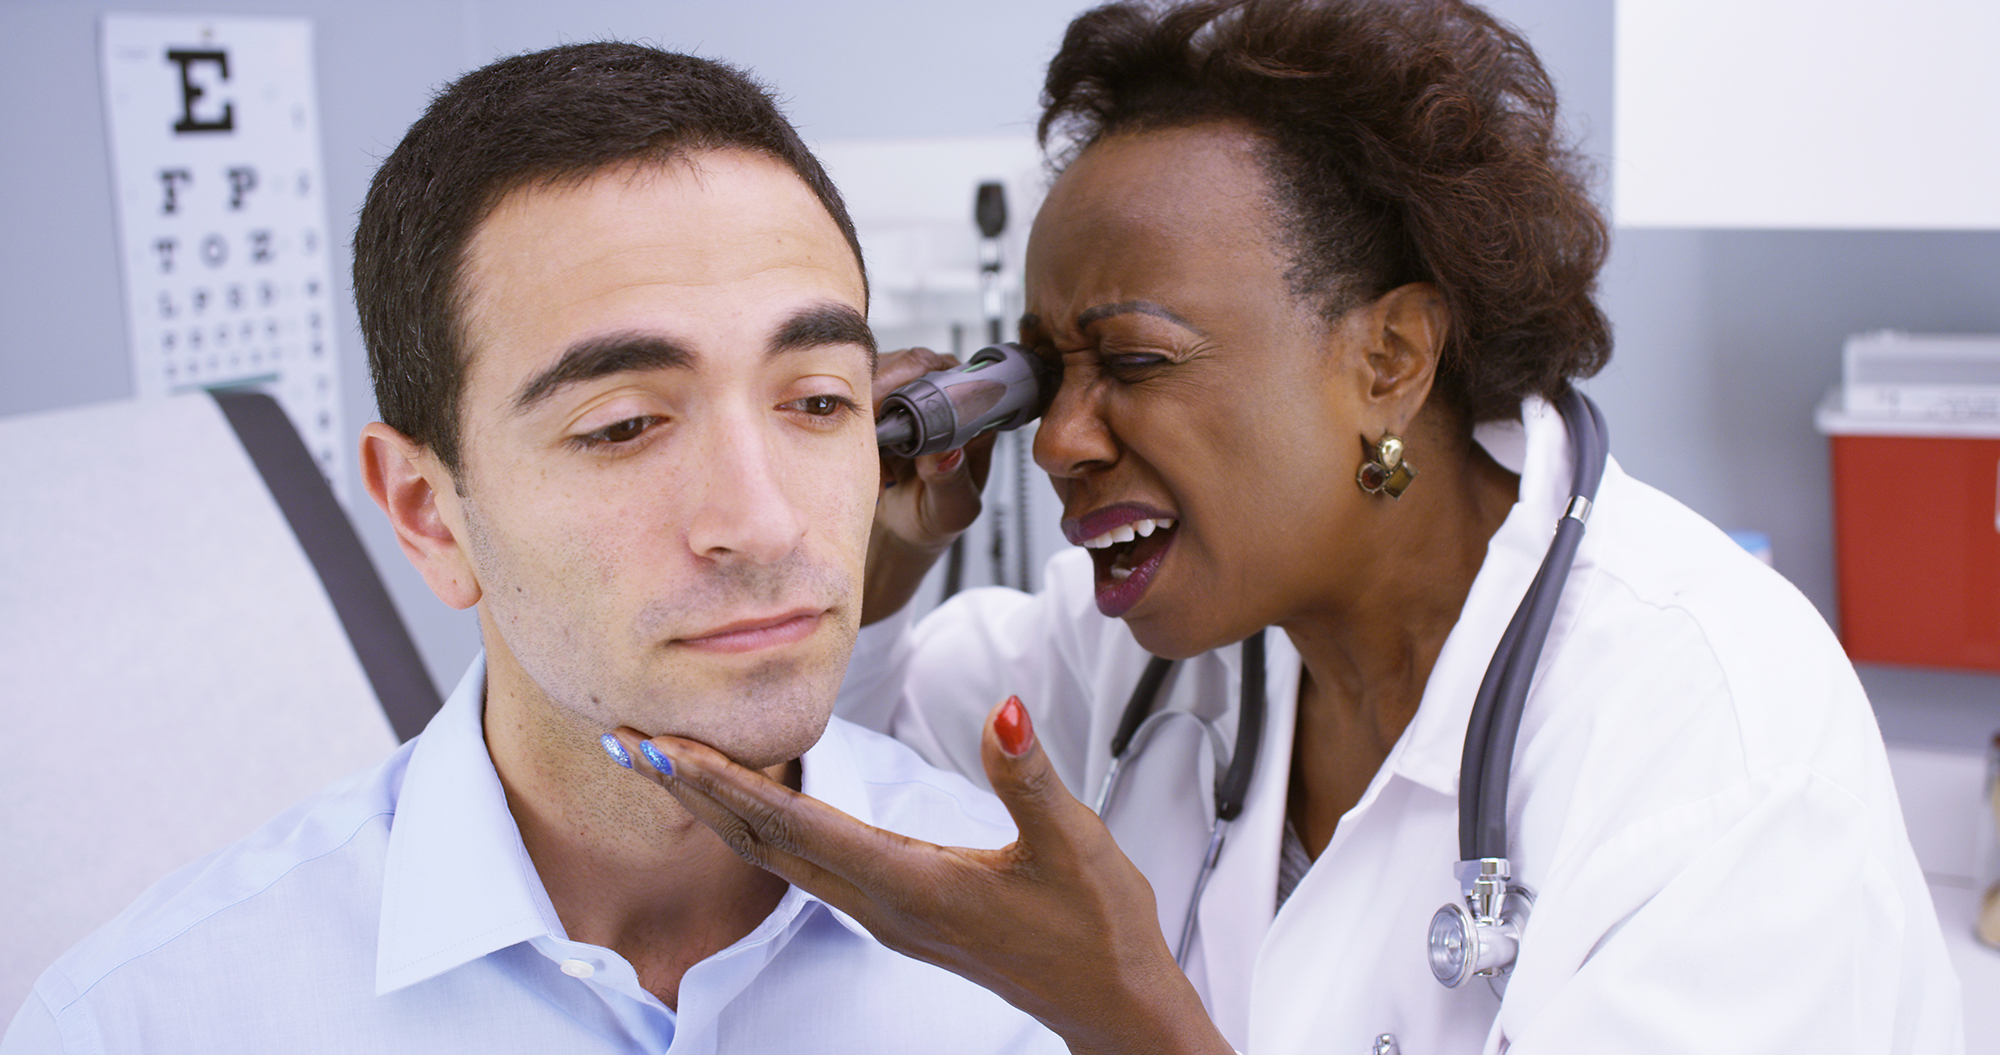 Doctor inspecting patient's ear